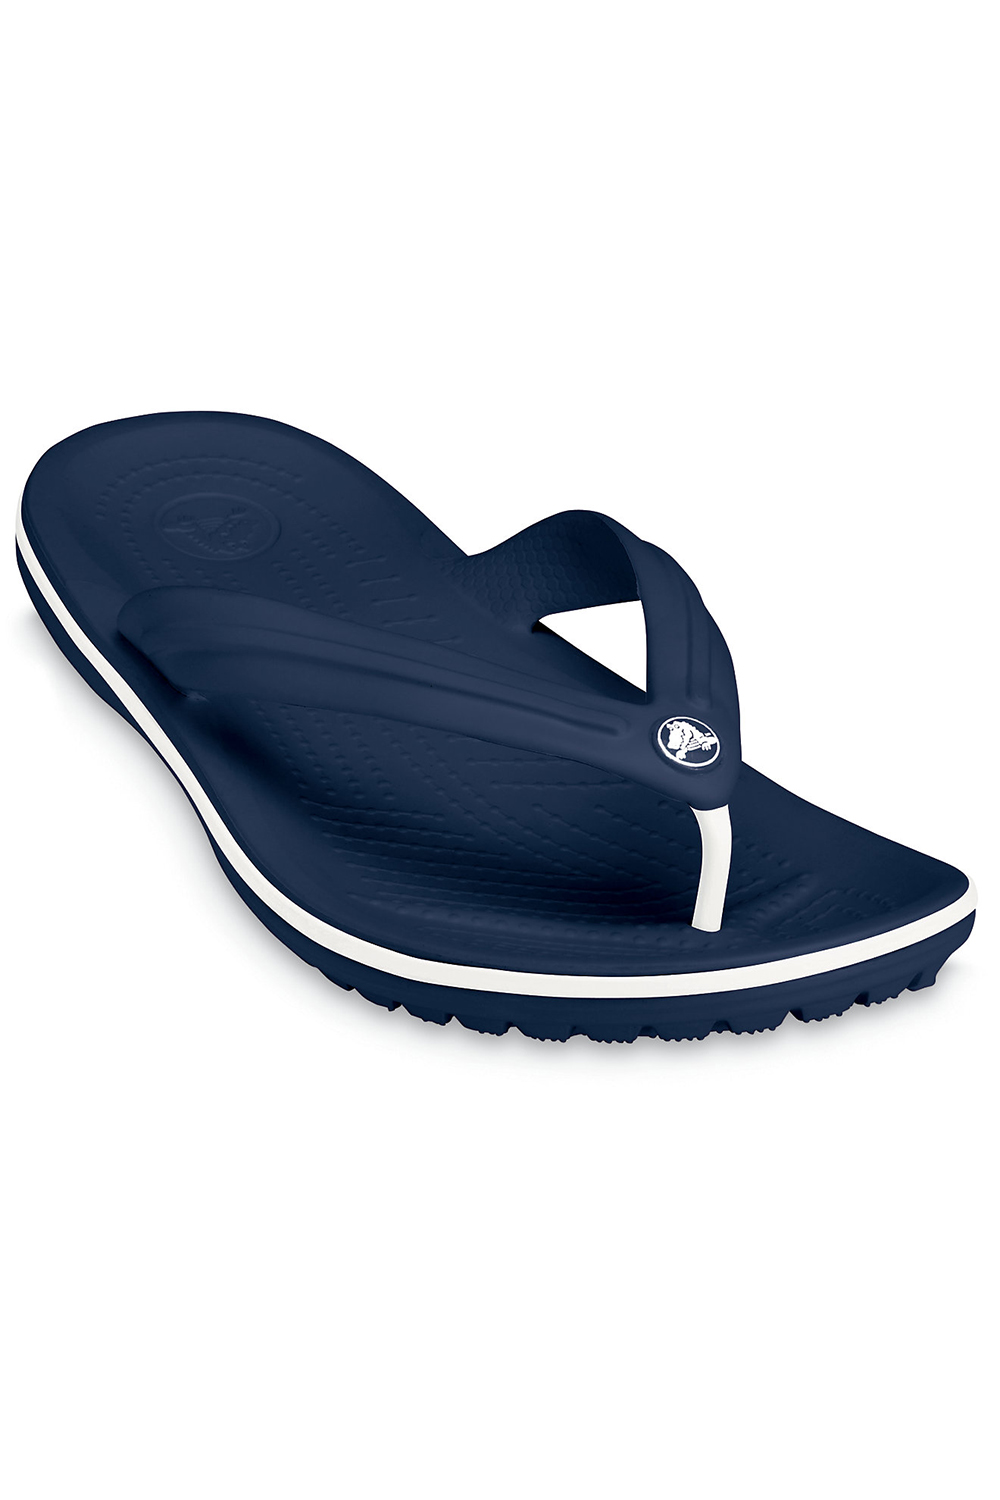 60e420093c75 Crocs 11033 Crocband Flip Navy Toe Post Sandal Various Sizes M4 w5 ...